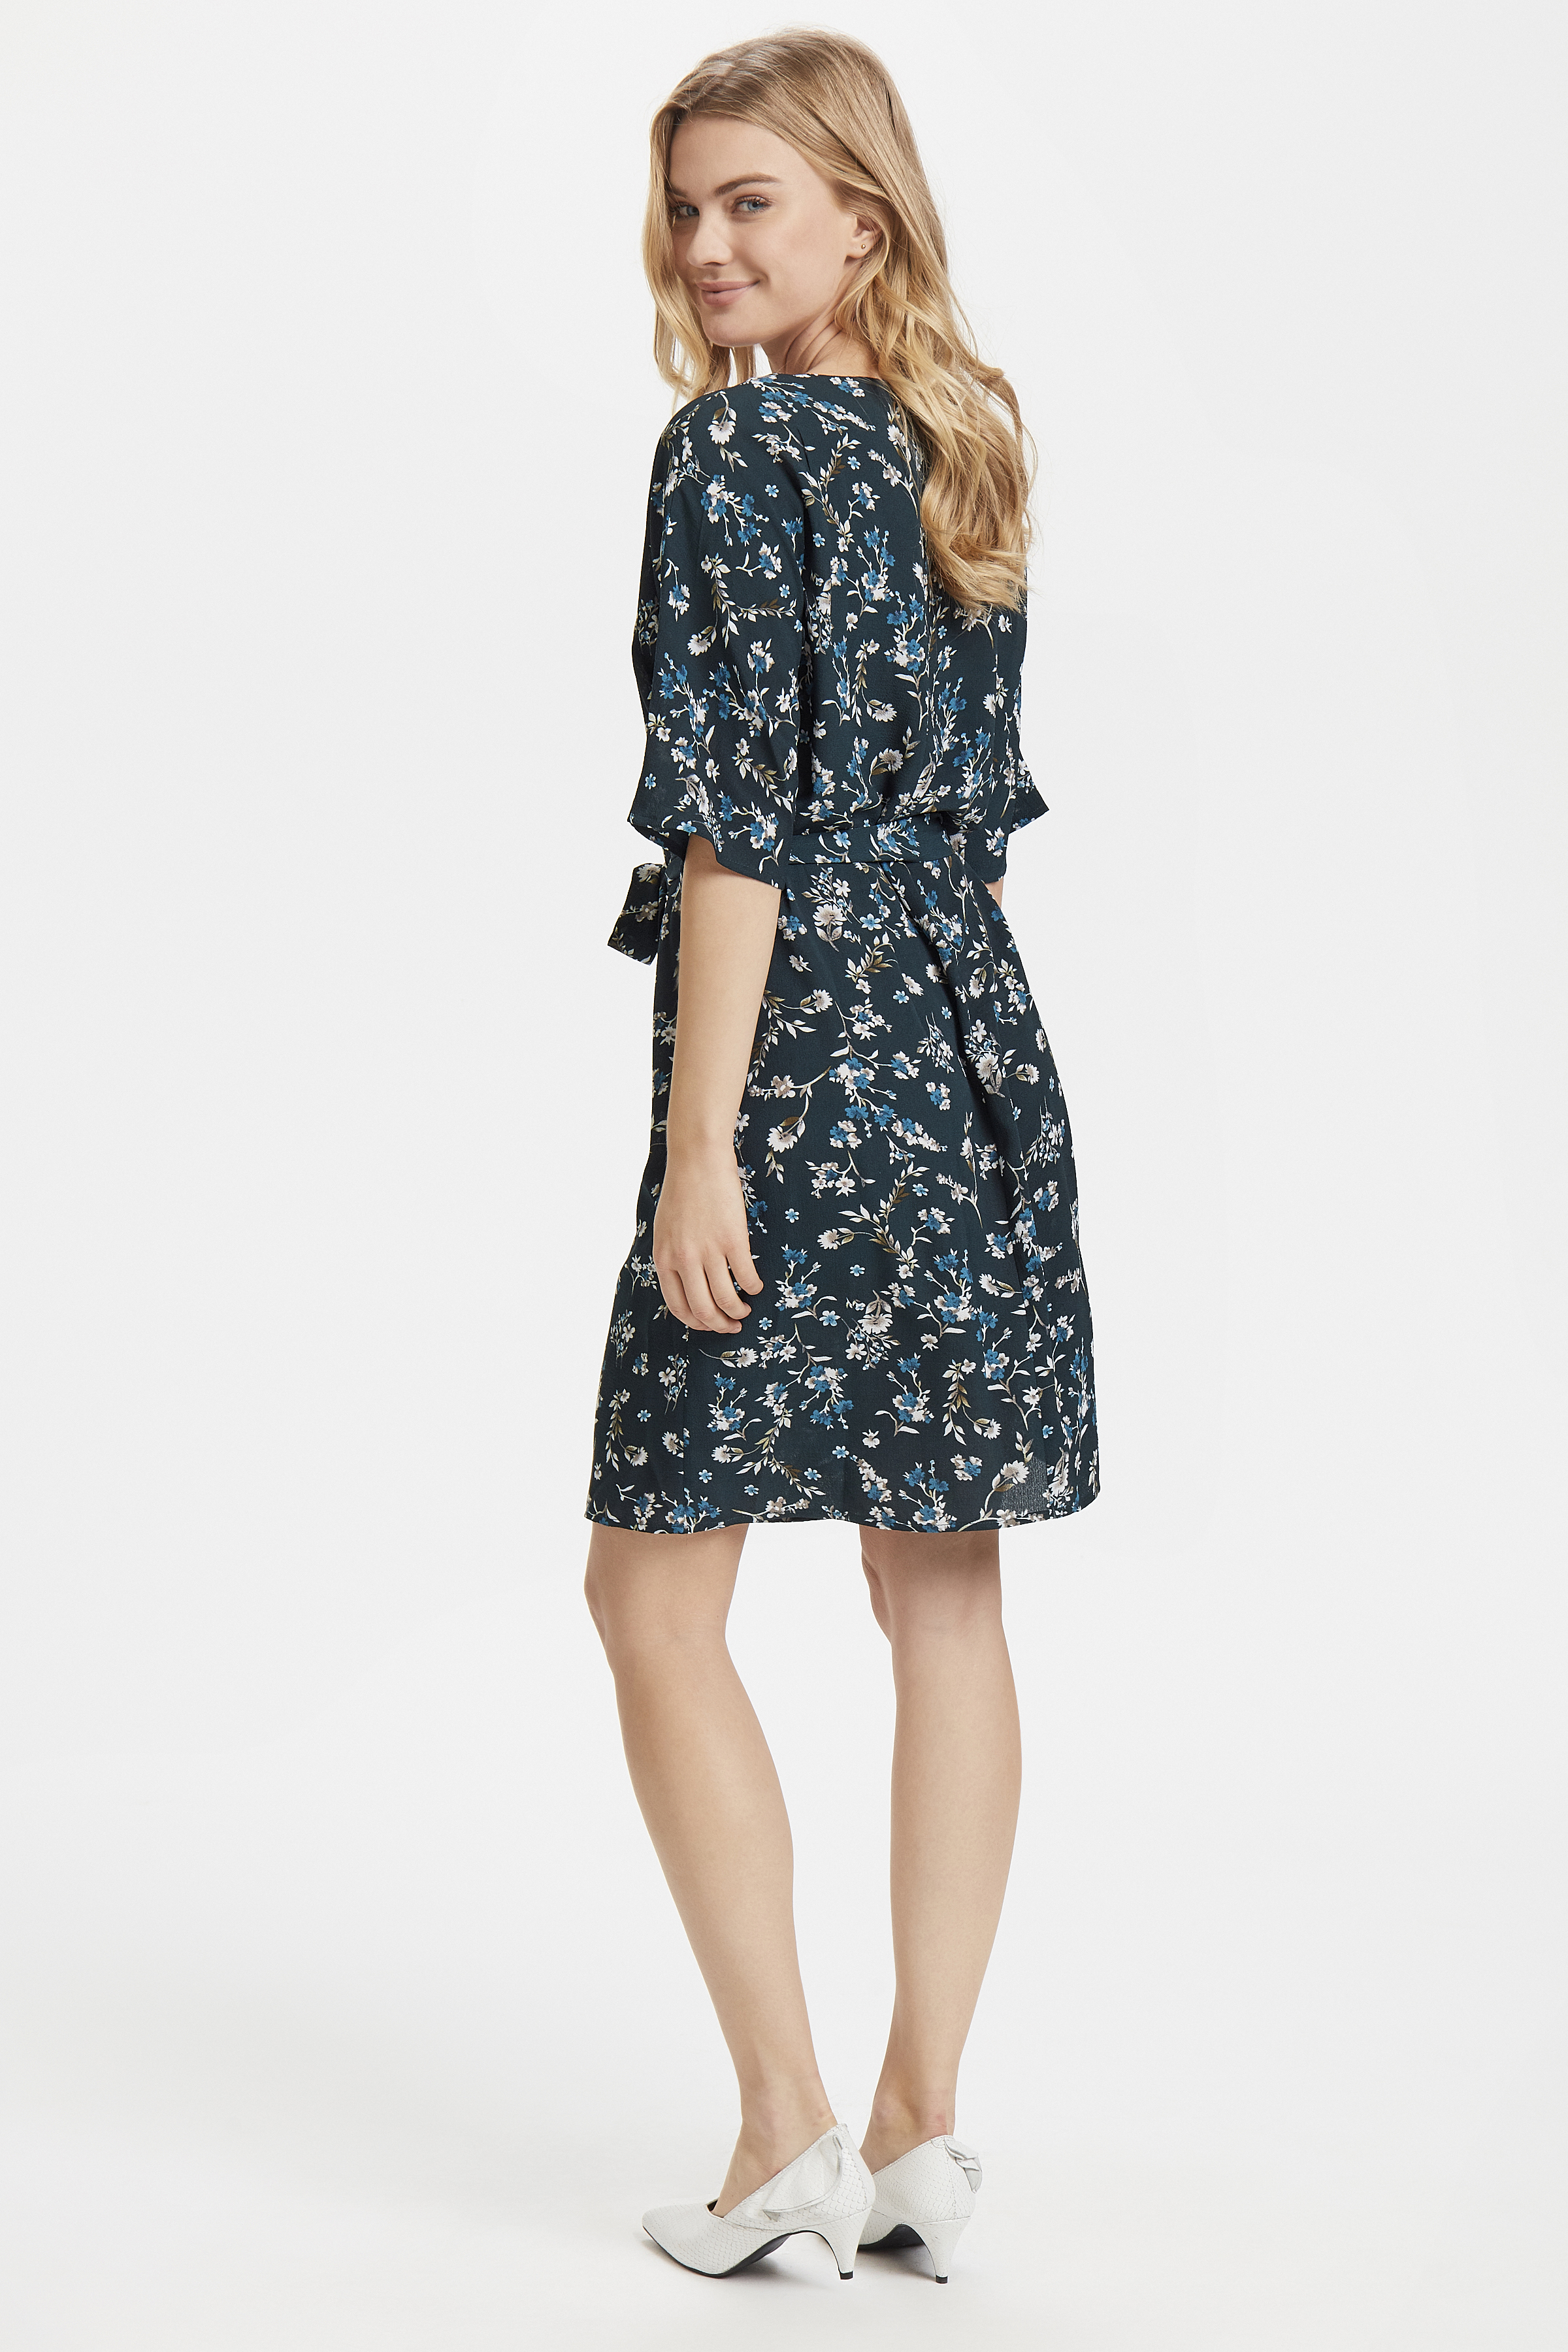 Green combi 1 Dress from b.young – Buy Green combi 1 Dress from size 34-42 here